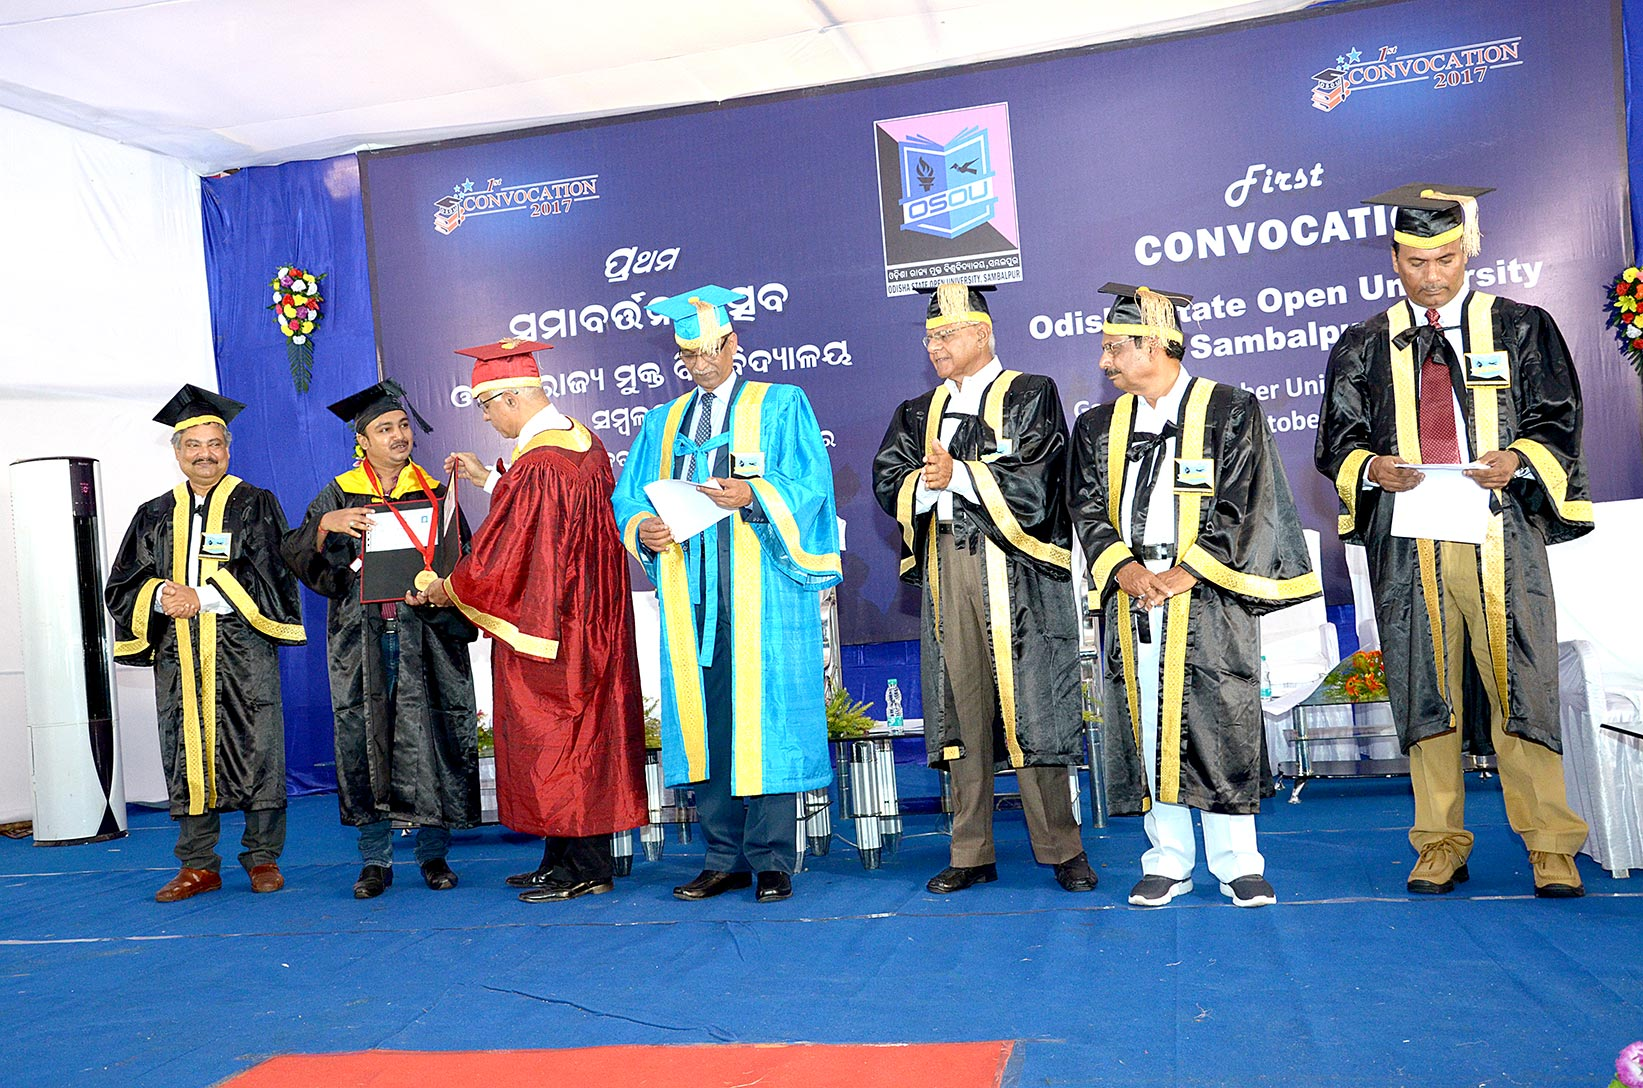 1st CONVOCATION OSOU 2017